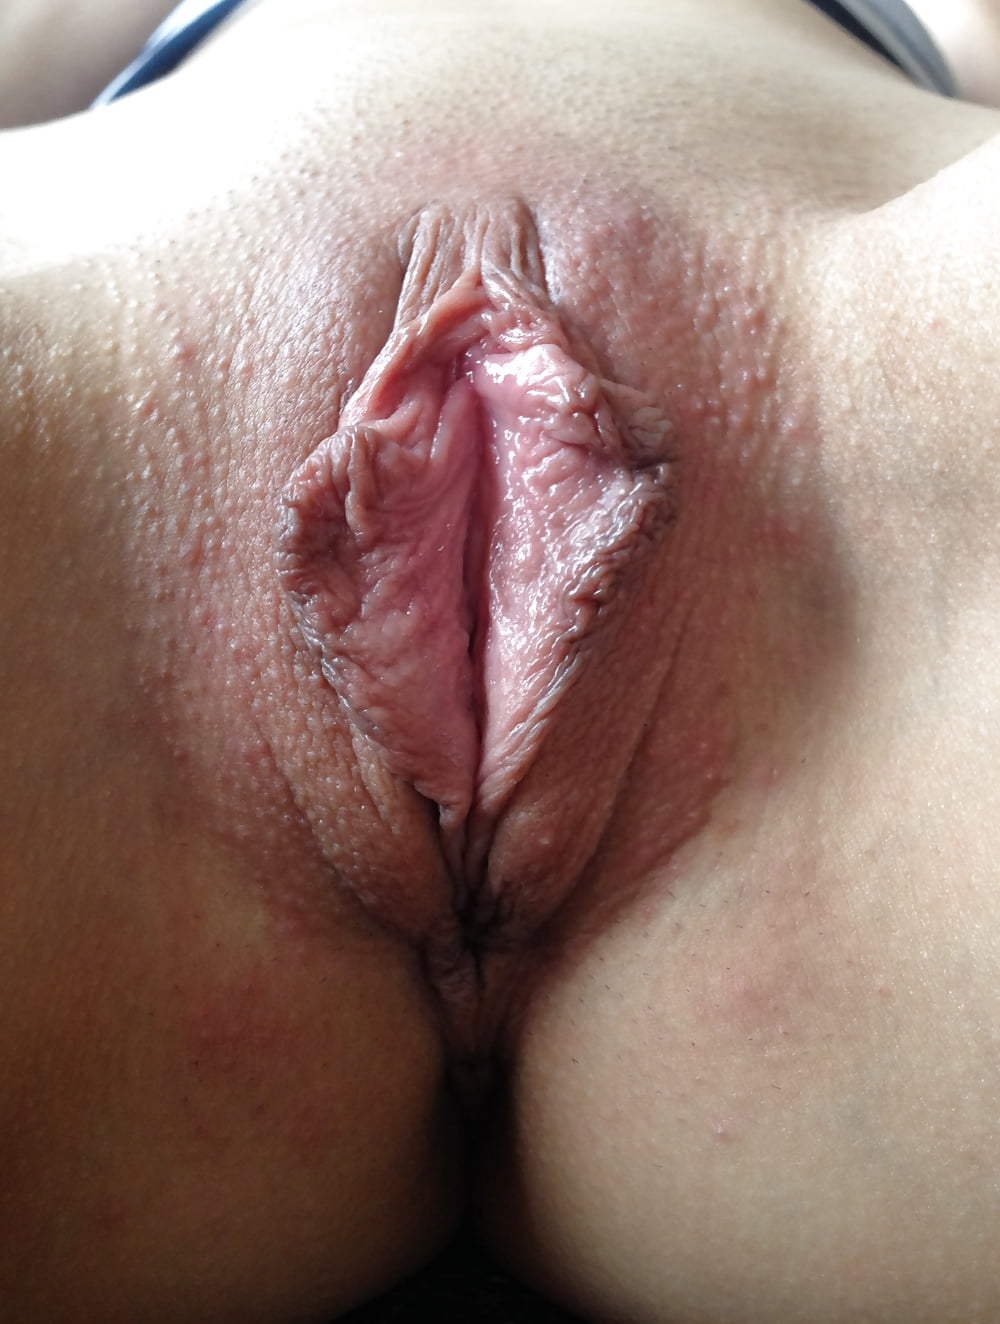 Free wife pussy lips, tumblr sexy vagina or pussy photo